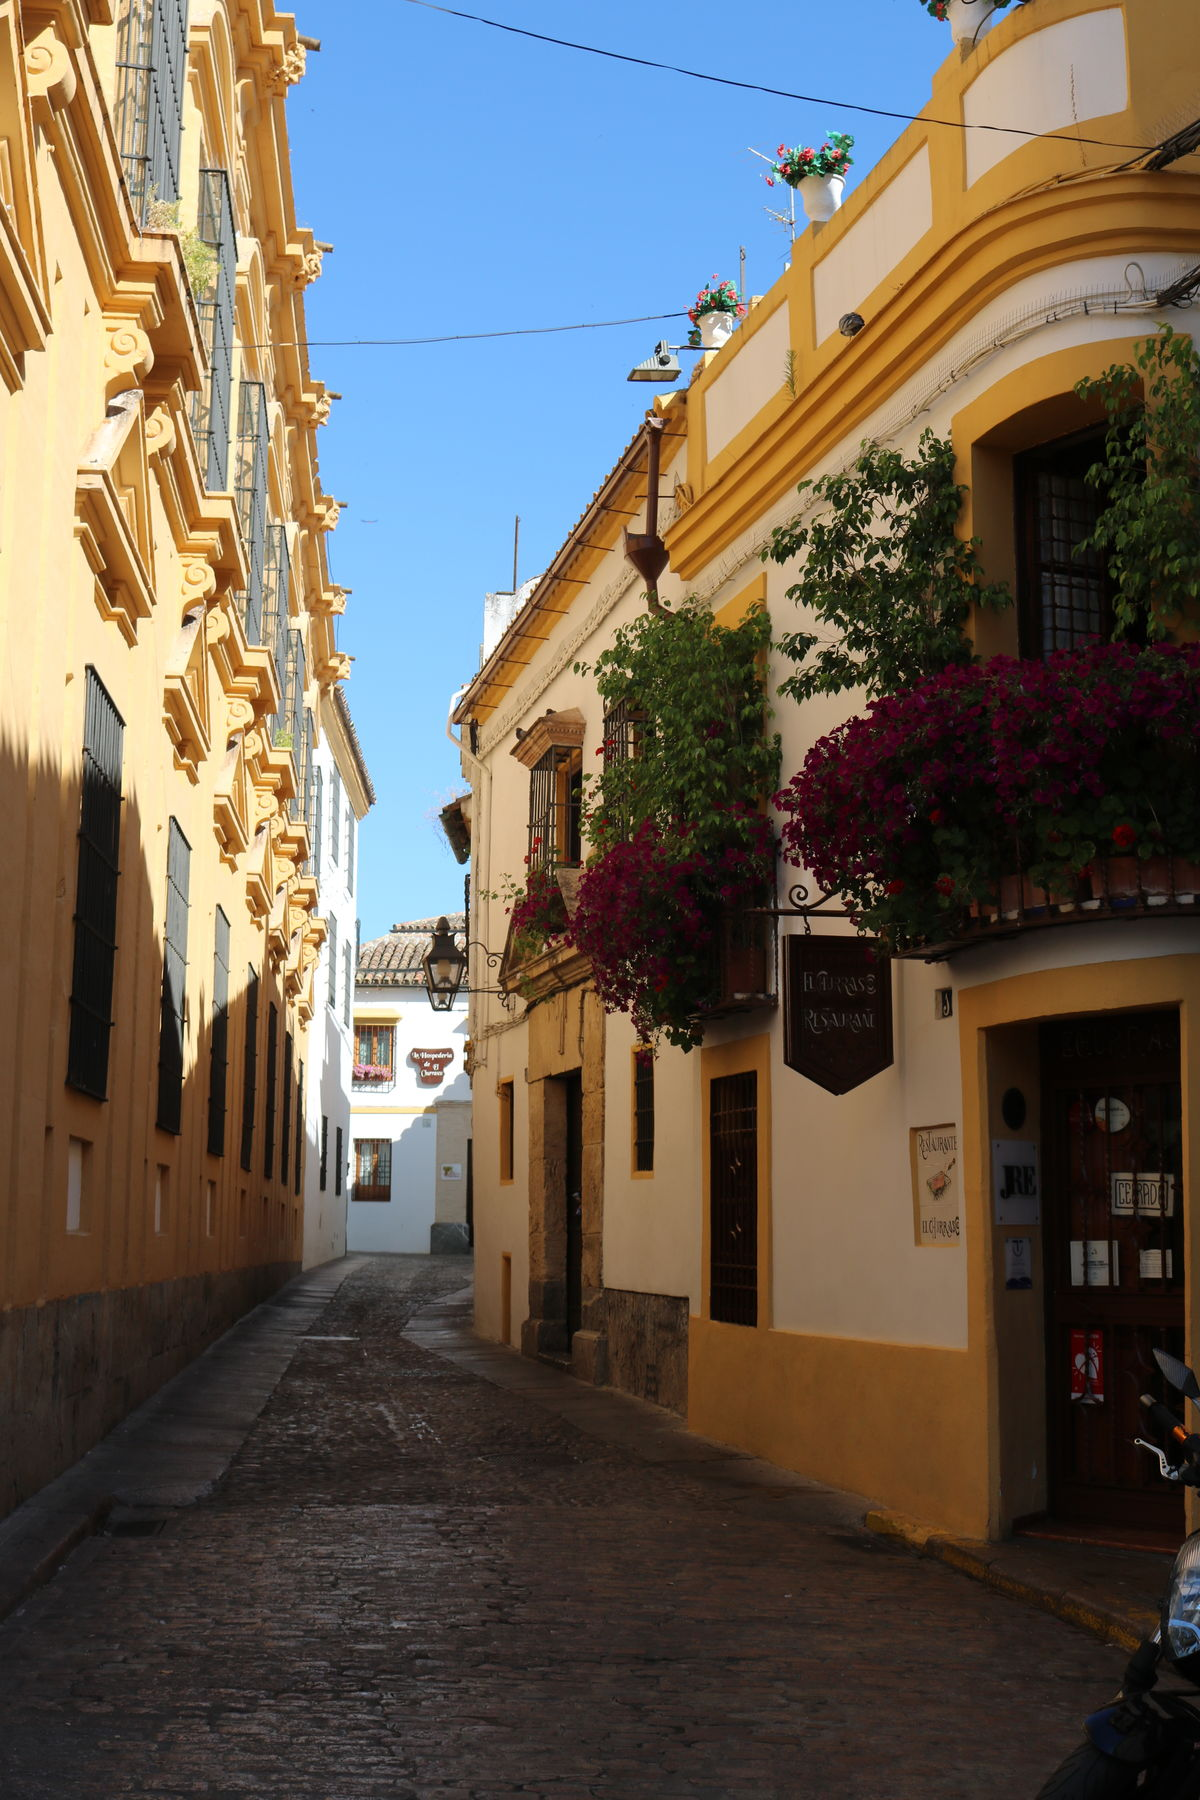 Pretty street in Cordoba, Spain Old Town Streets Architecture Building Exterior Built Structure City Clear Sky Day Flowers No People Outdoors Pretty Street Residential Building Sky Street The Way Forward Town Yellow